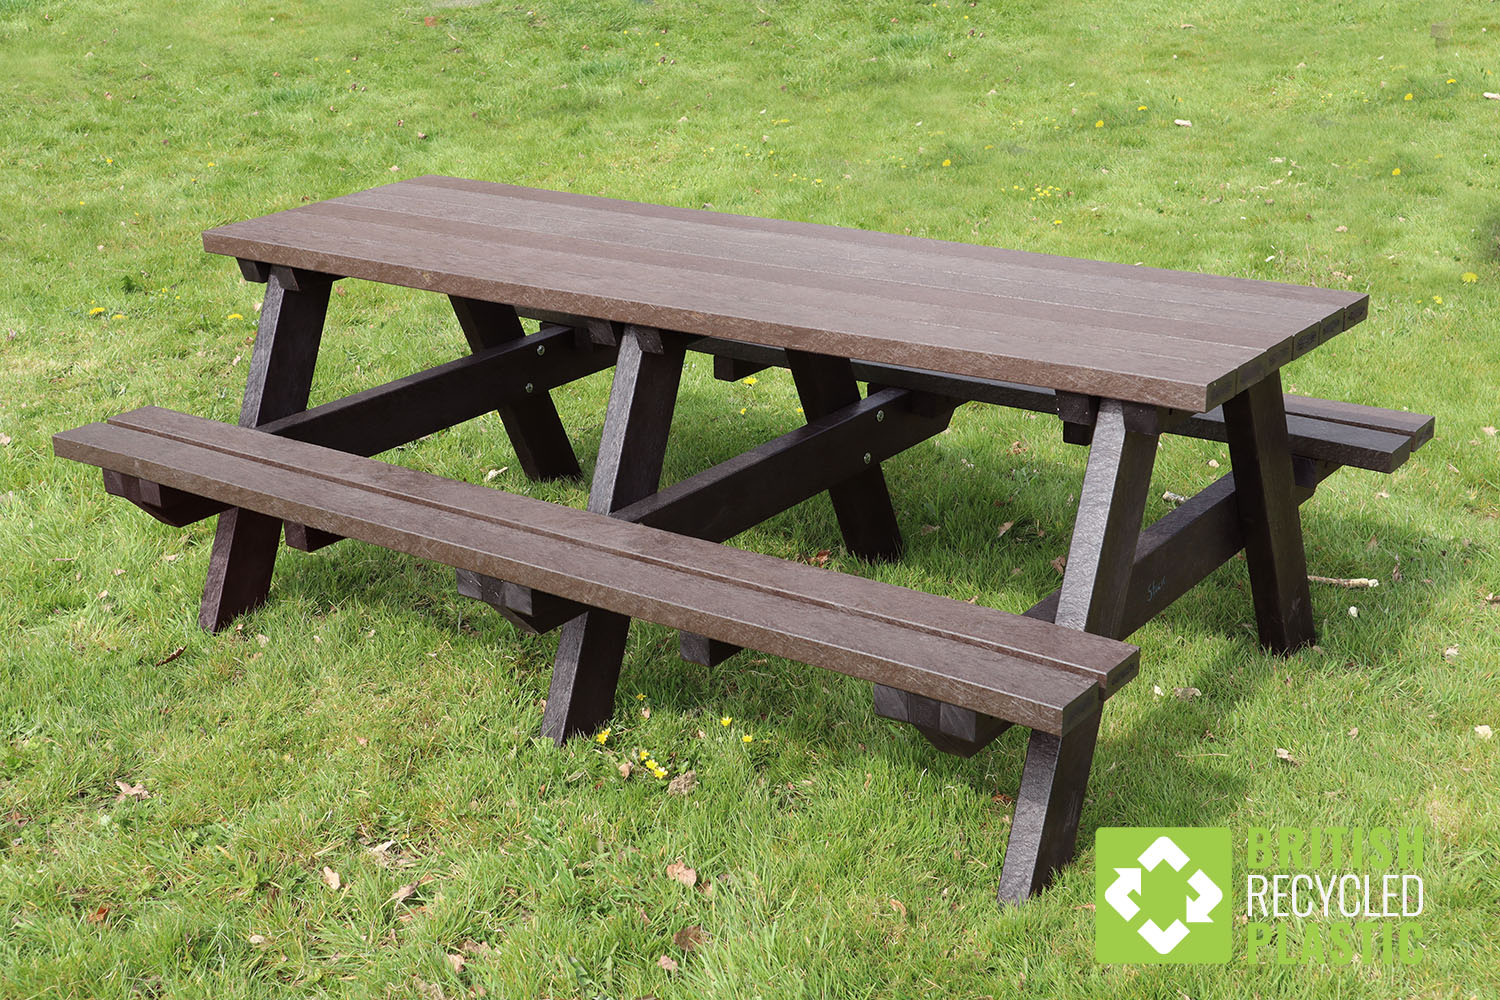 The Todmorden is the largest bench from British Recycled Plastic